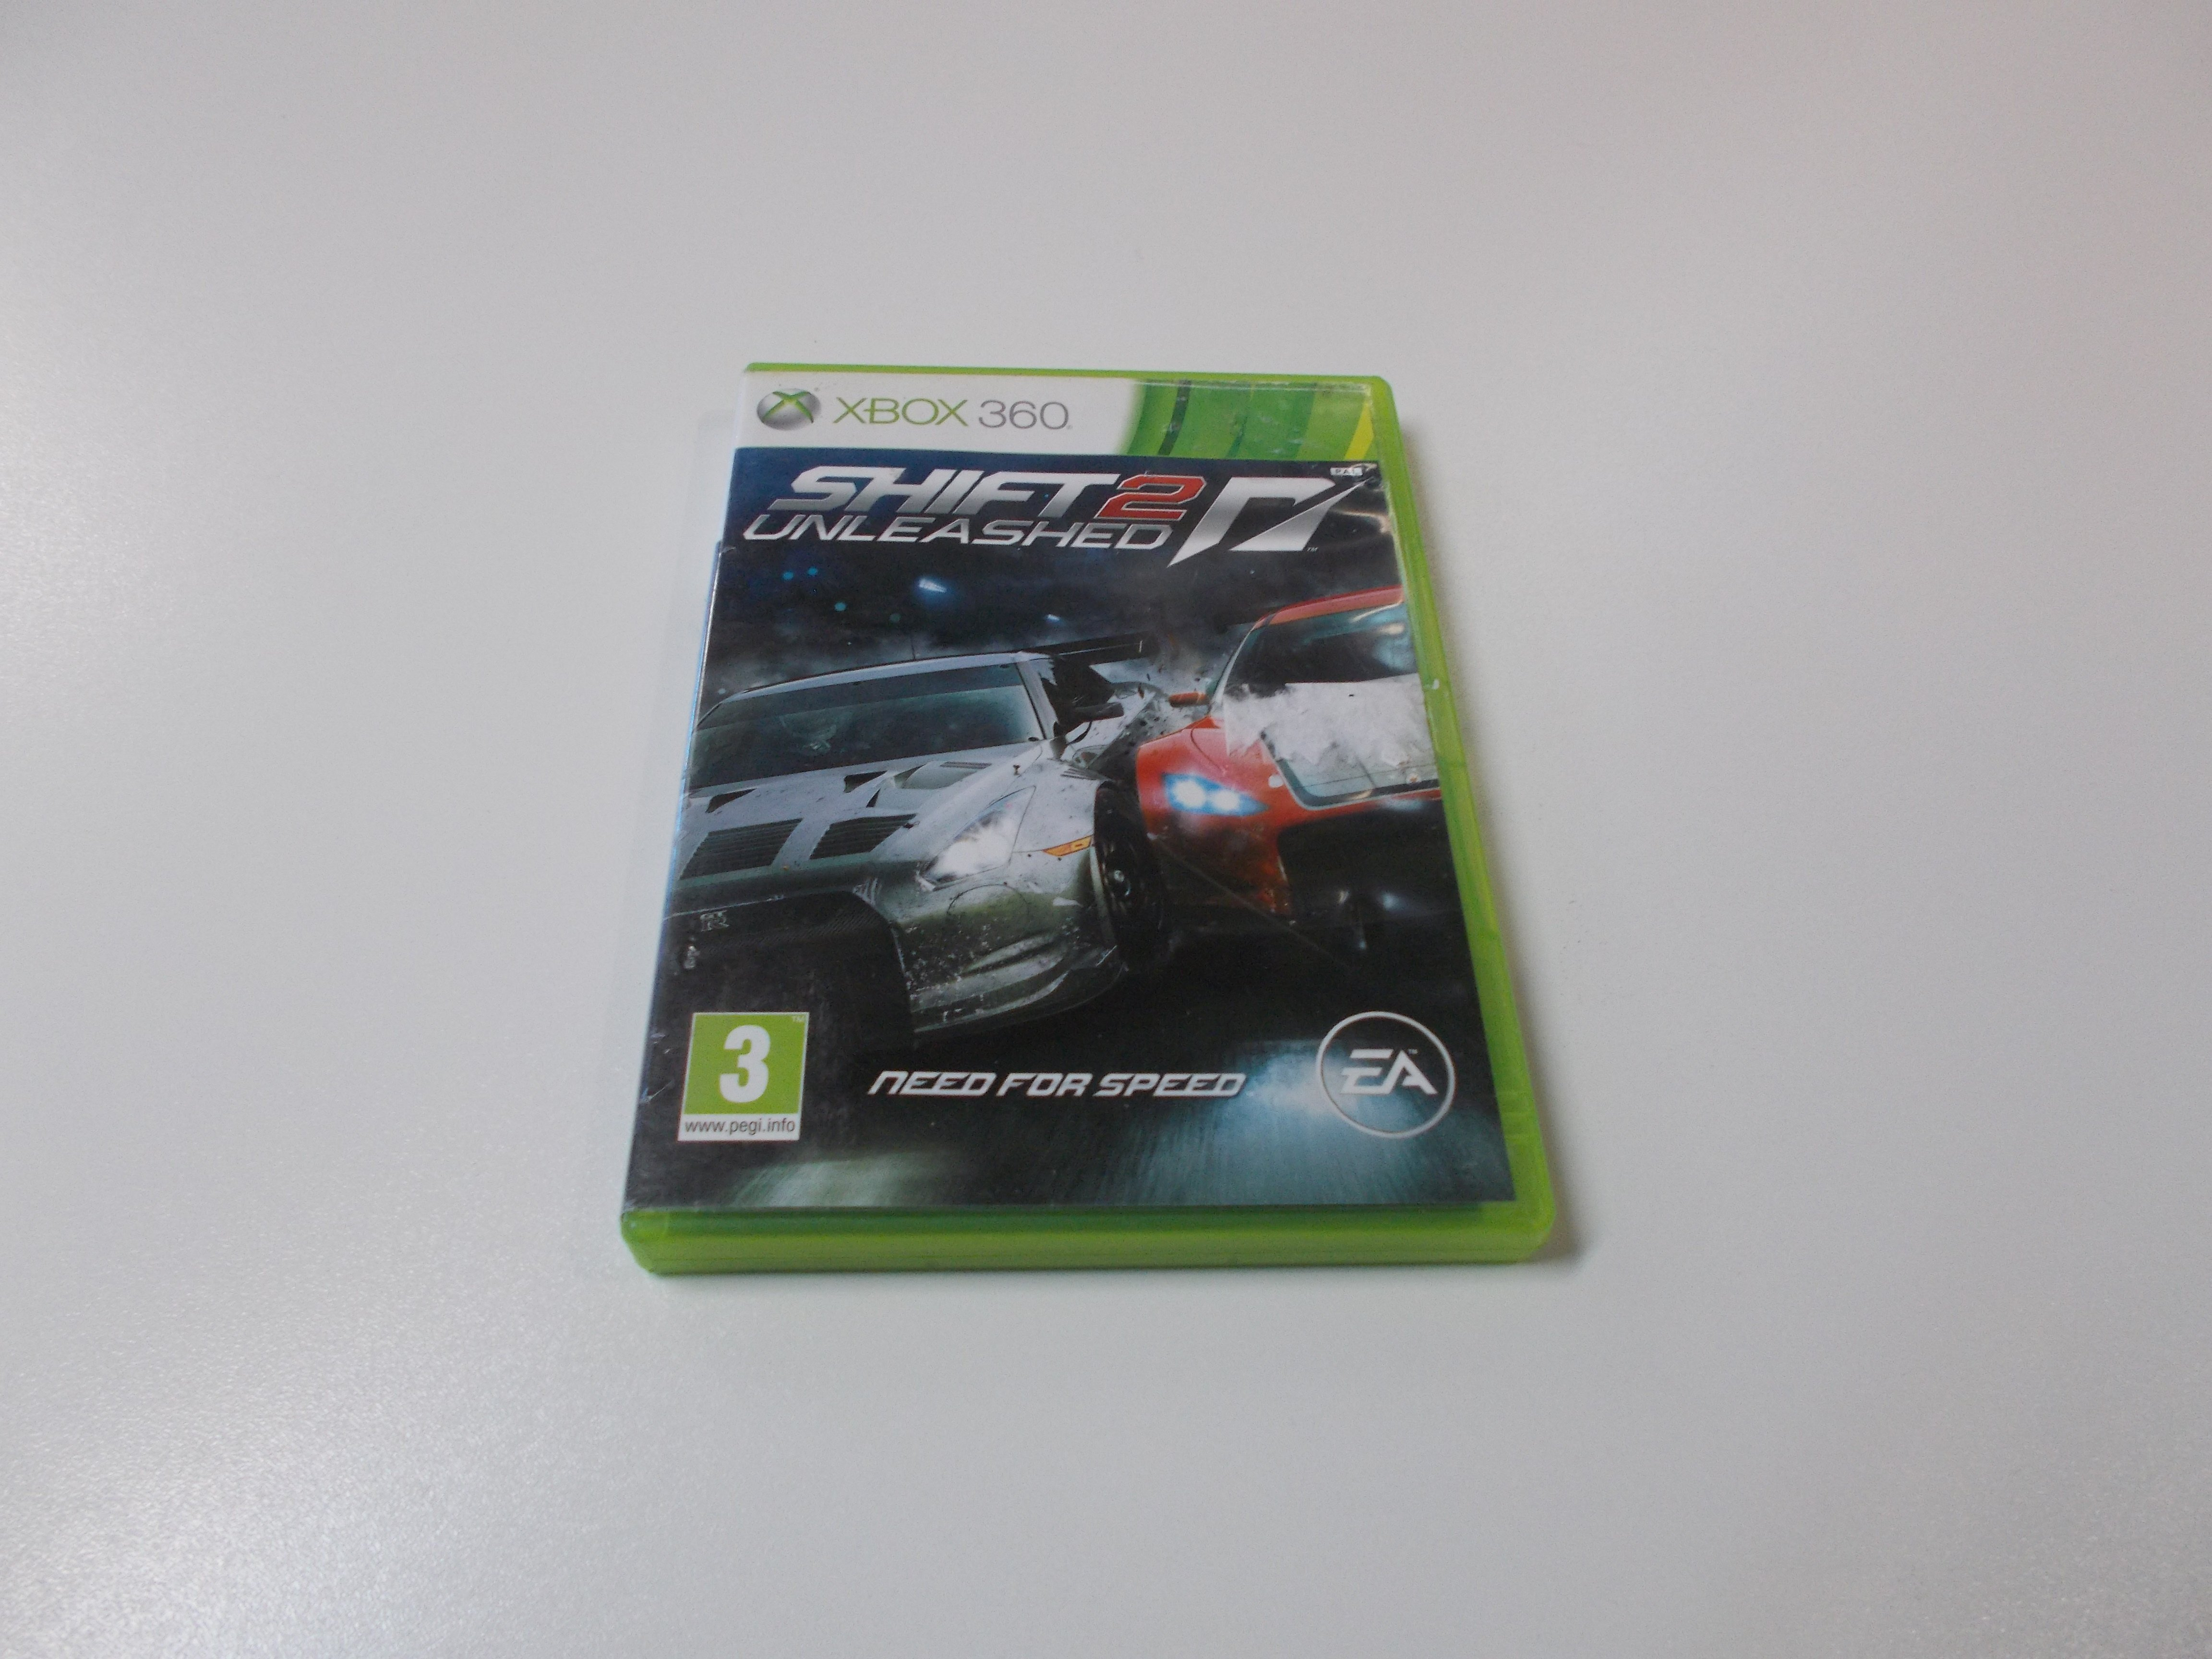 Need for Speed: Shift 2 Unleashed - GRA Xbox 360 - Opole 0431